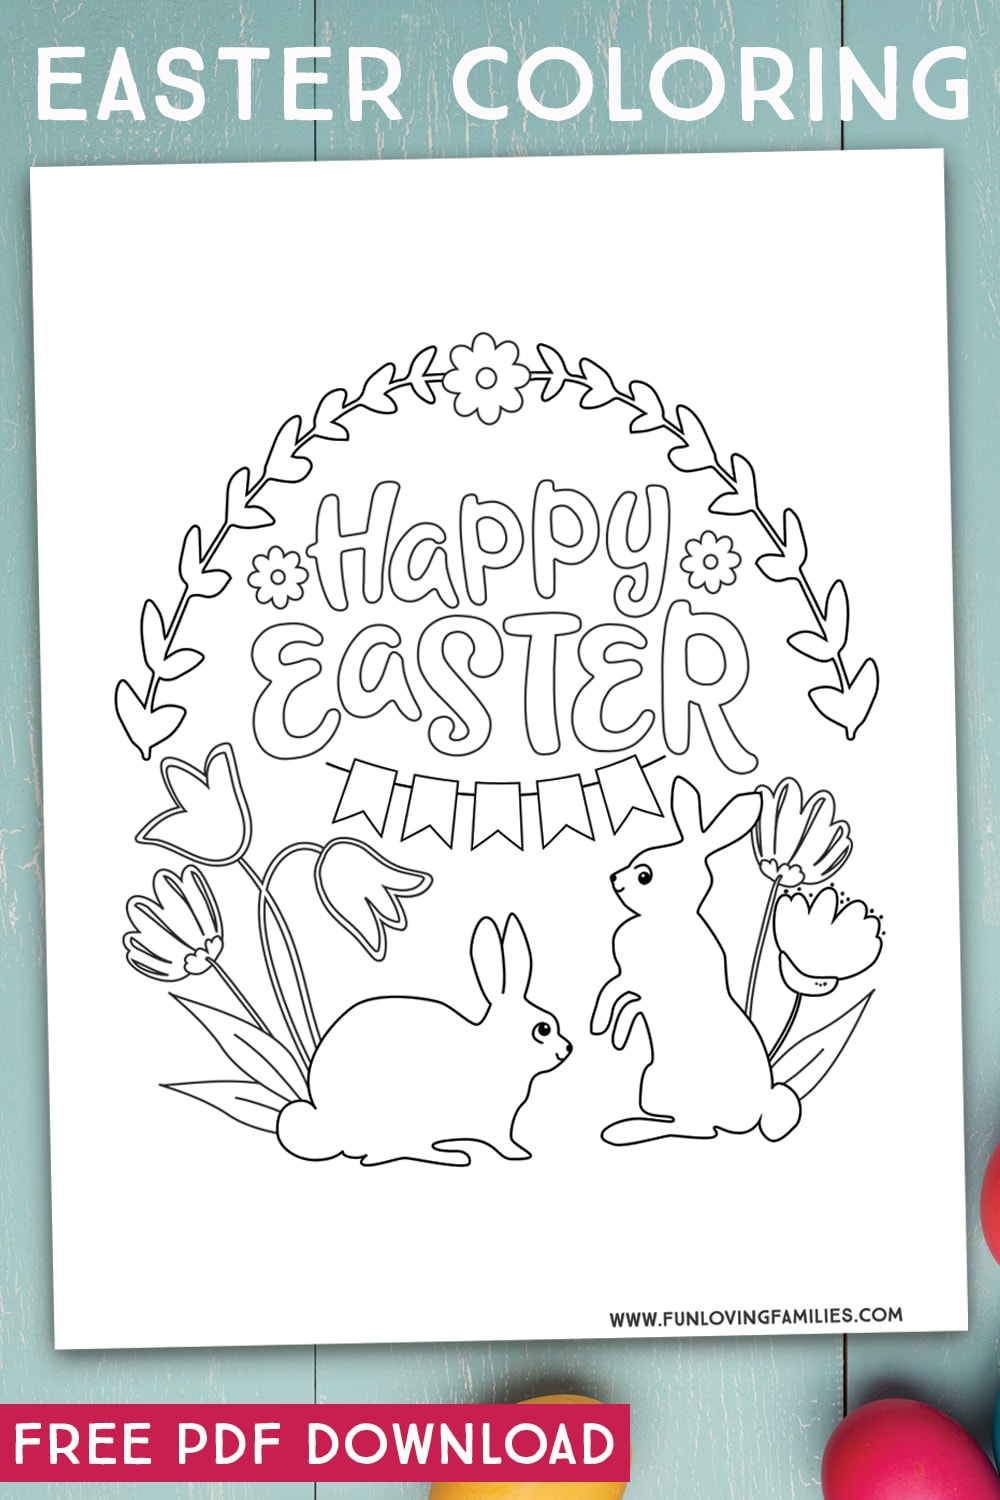 Super-cute Easter coloring page for kids or adults. Click through to see all of the fun Easter coloring sheets.